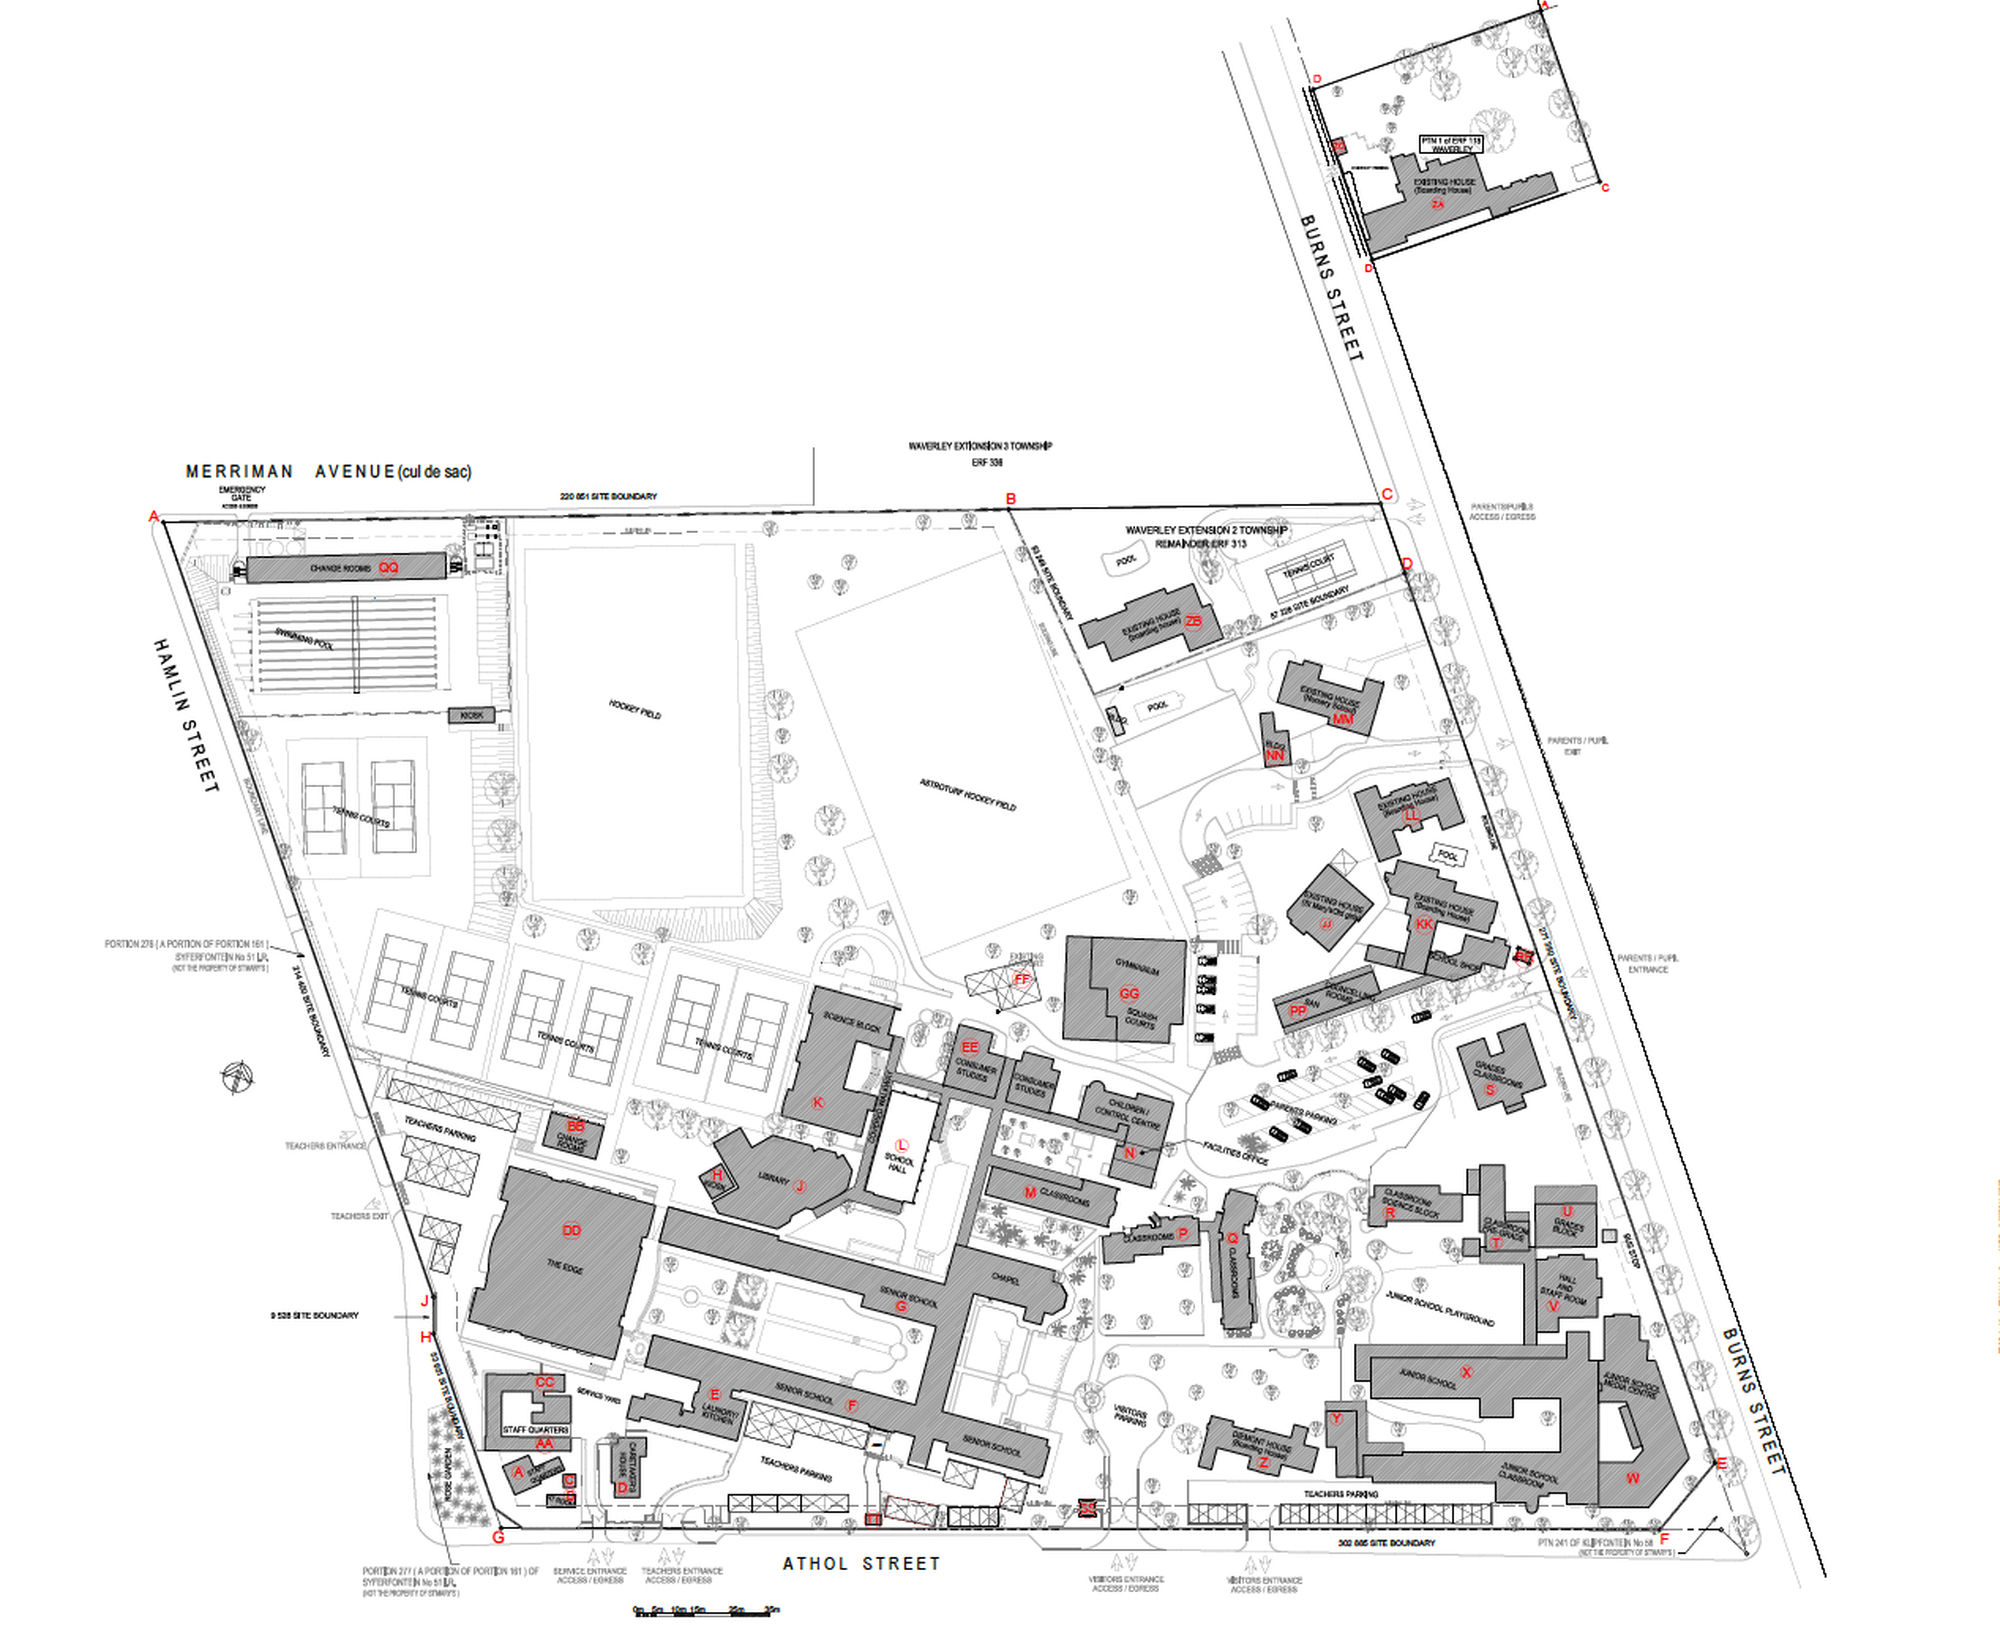 St marys campus layout cropped new jpg